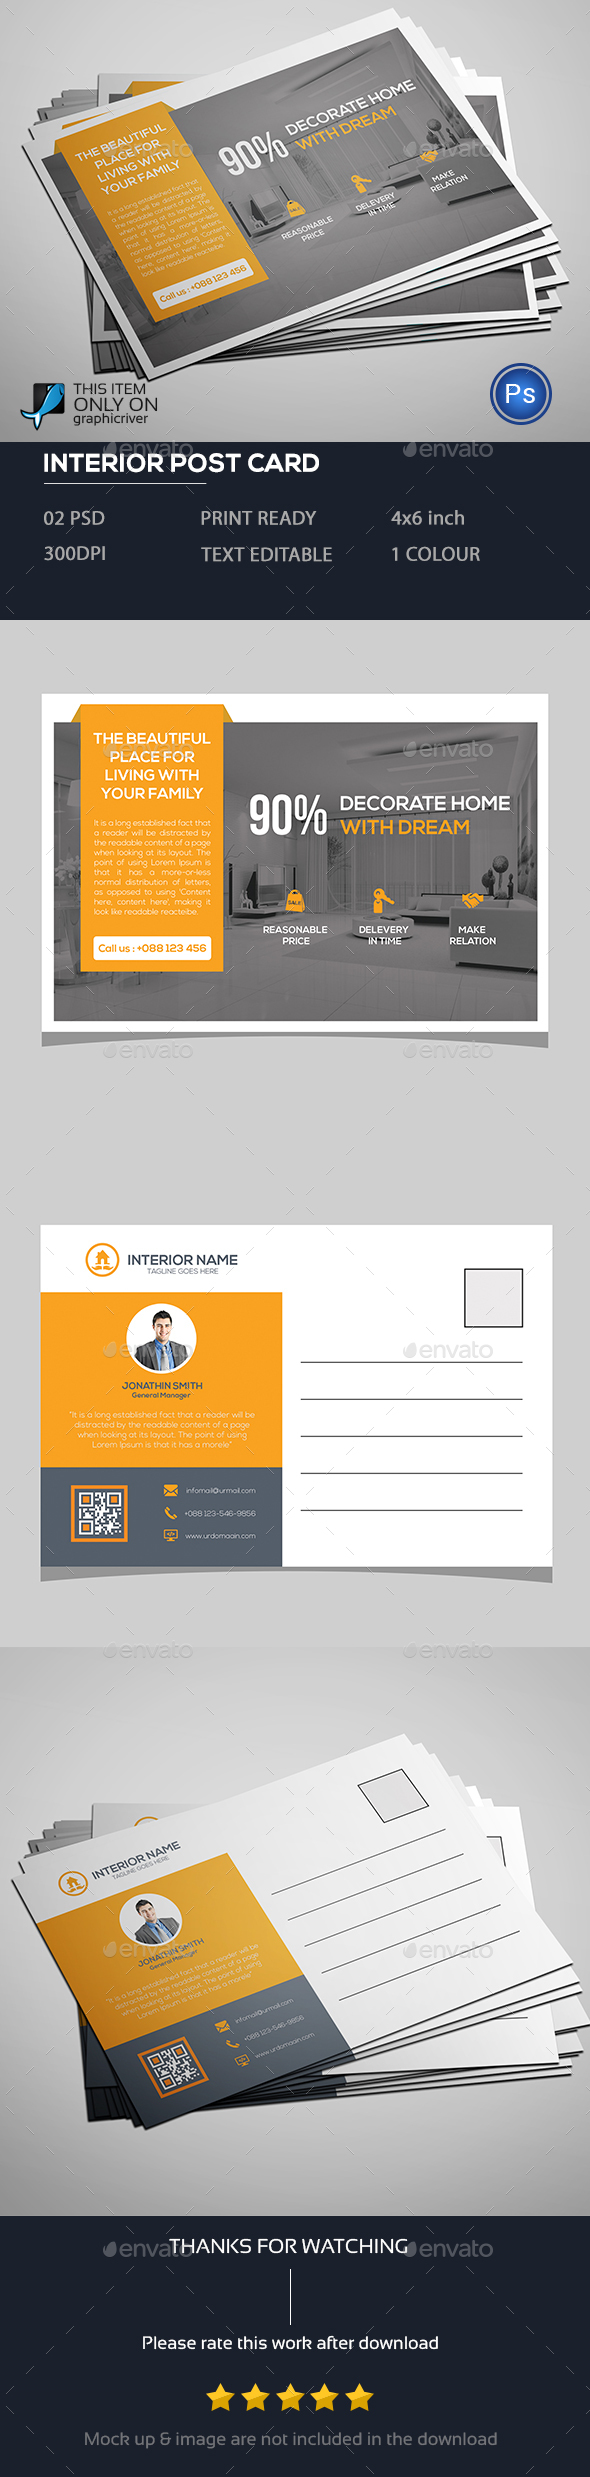 Interior Post Card - Cards & Invites Print Templates